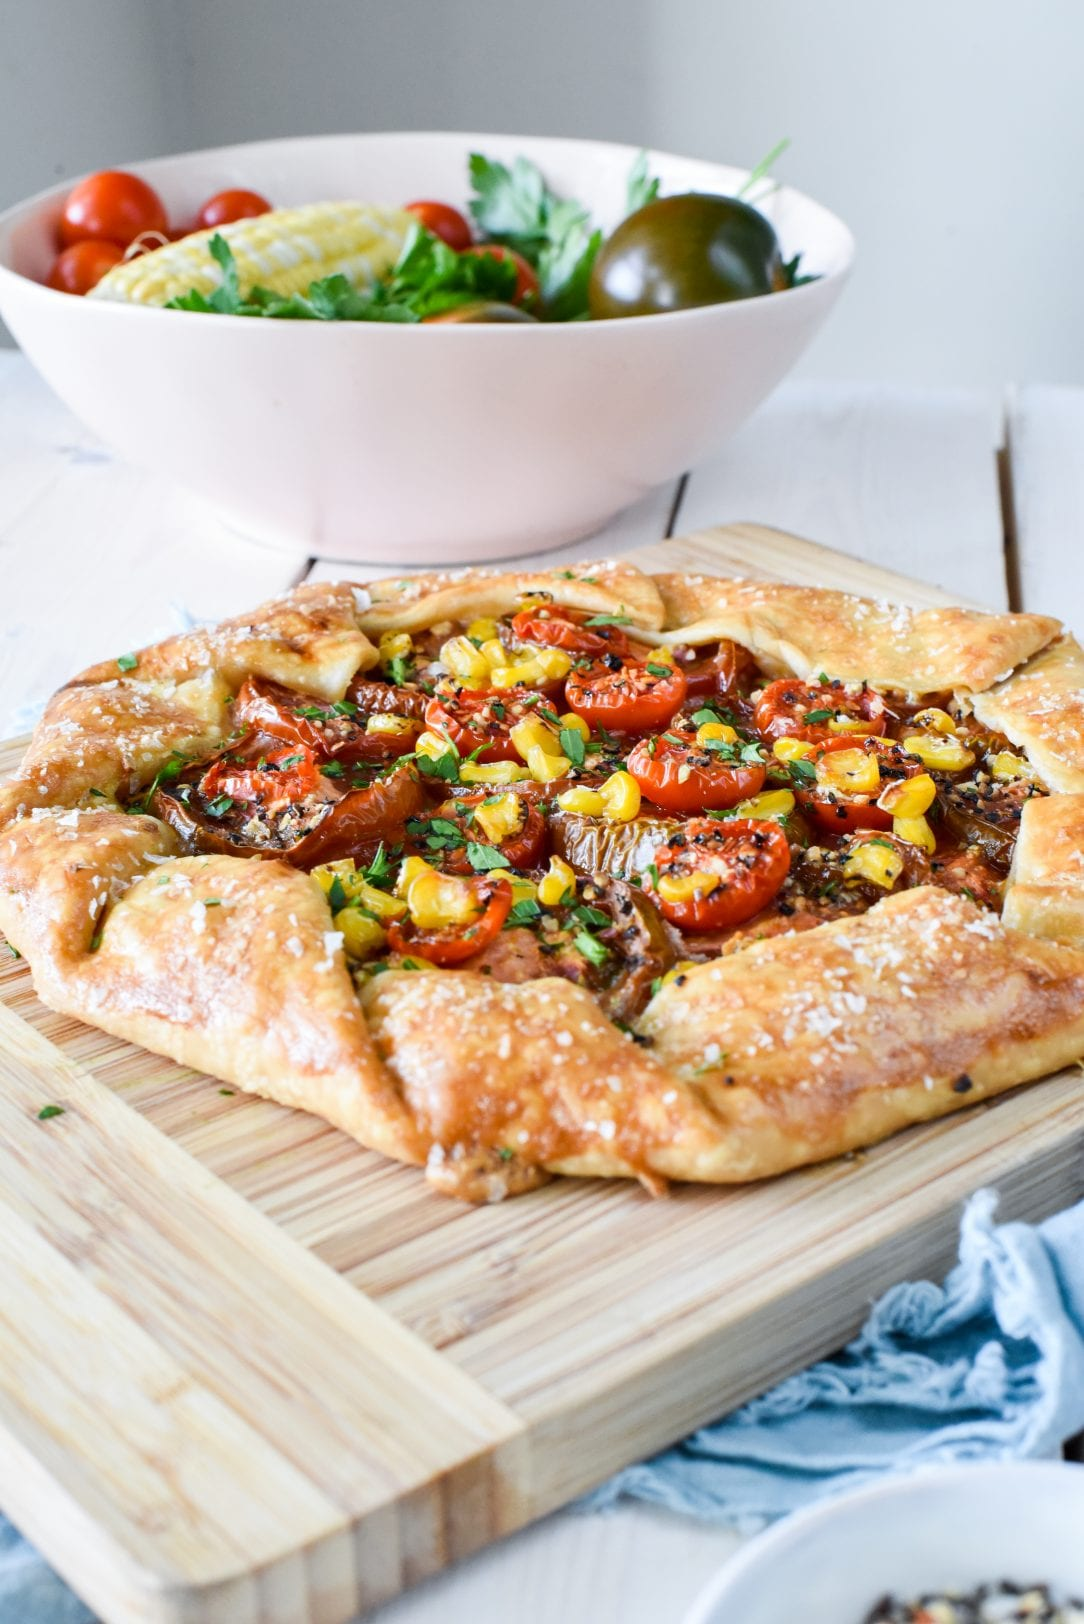 galette with roasted corn and tomatoes sitting on a cutting board